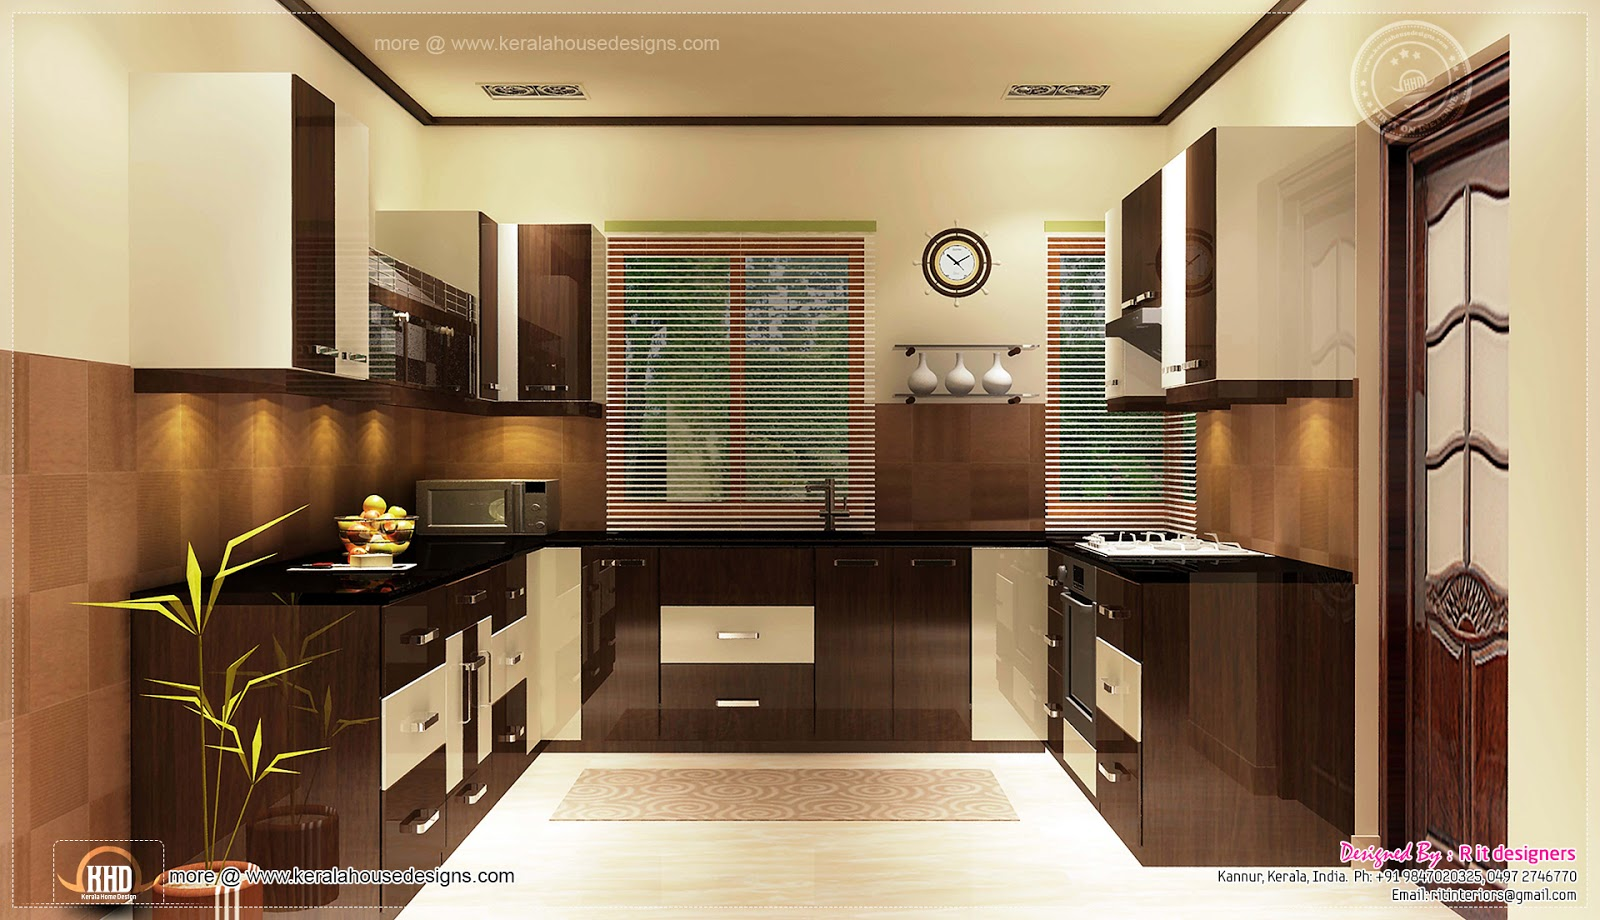 Home interior designs by rit designers kerala home design and floor plans Home design ideas pictures remodel and decor